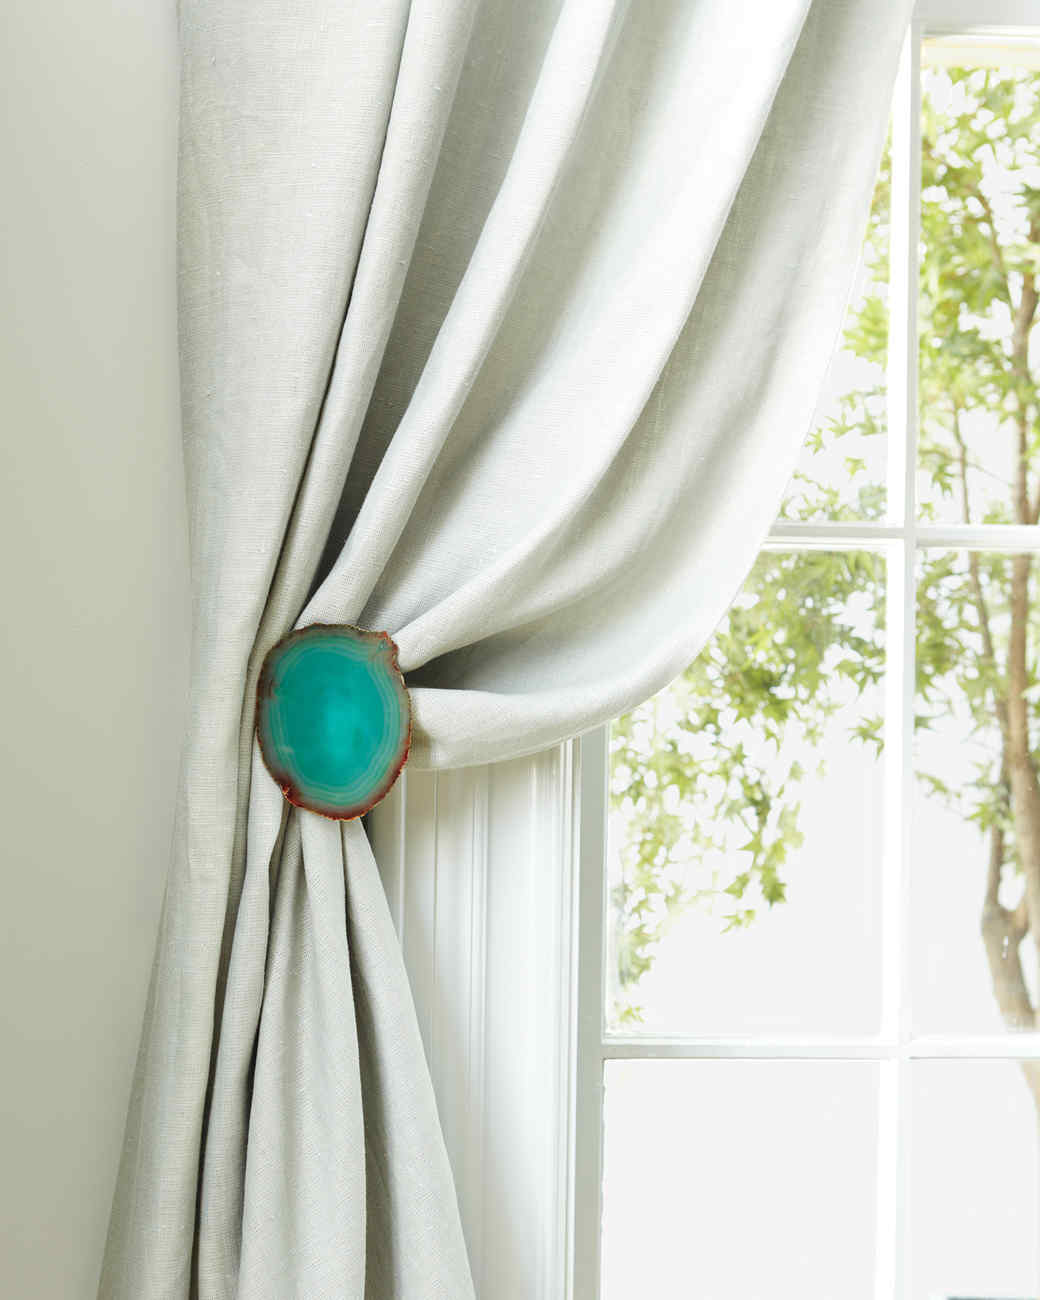 Decorative Curtain Tiebacks | Martha Stewart for Curtain Holders Tie Backs  555kxo